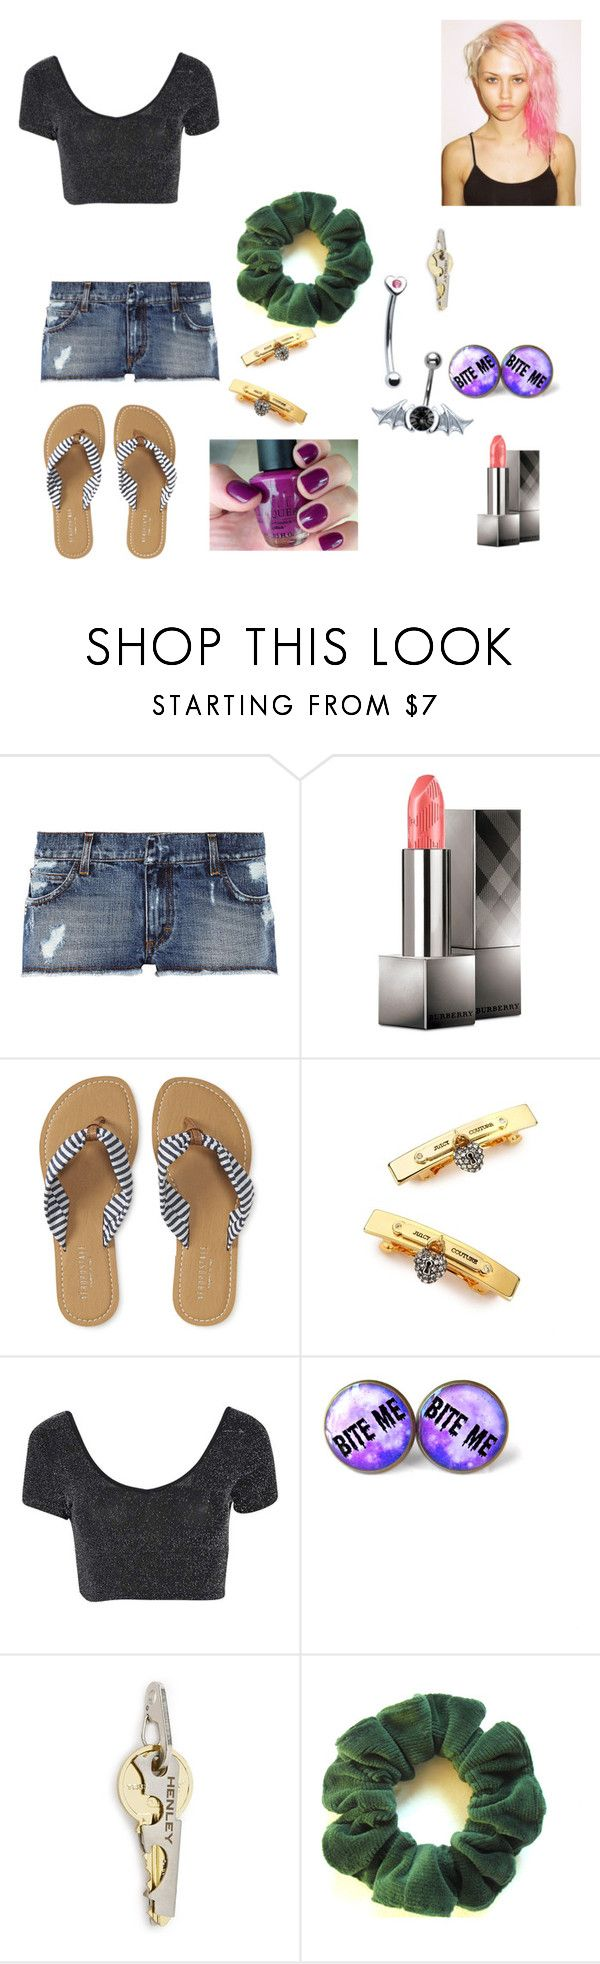 """""""Frankie 20"""" by stockmon ❤ liked on Polyvore featuring Pierre Balmain, Burberry, Aéropostale, Juicy Couture, Boohoo, OPI and Henley Brands"""